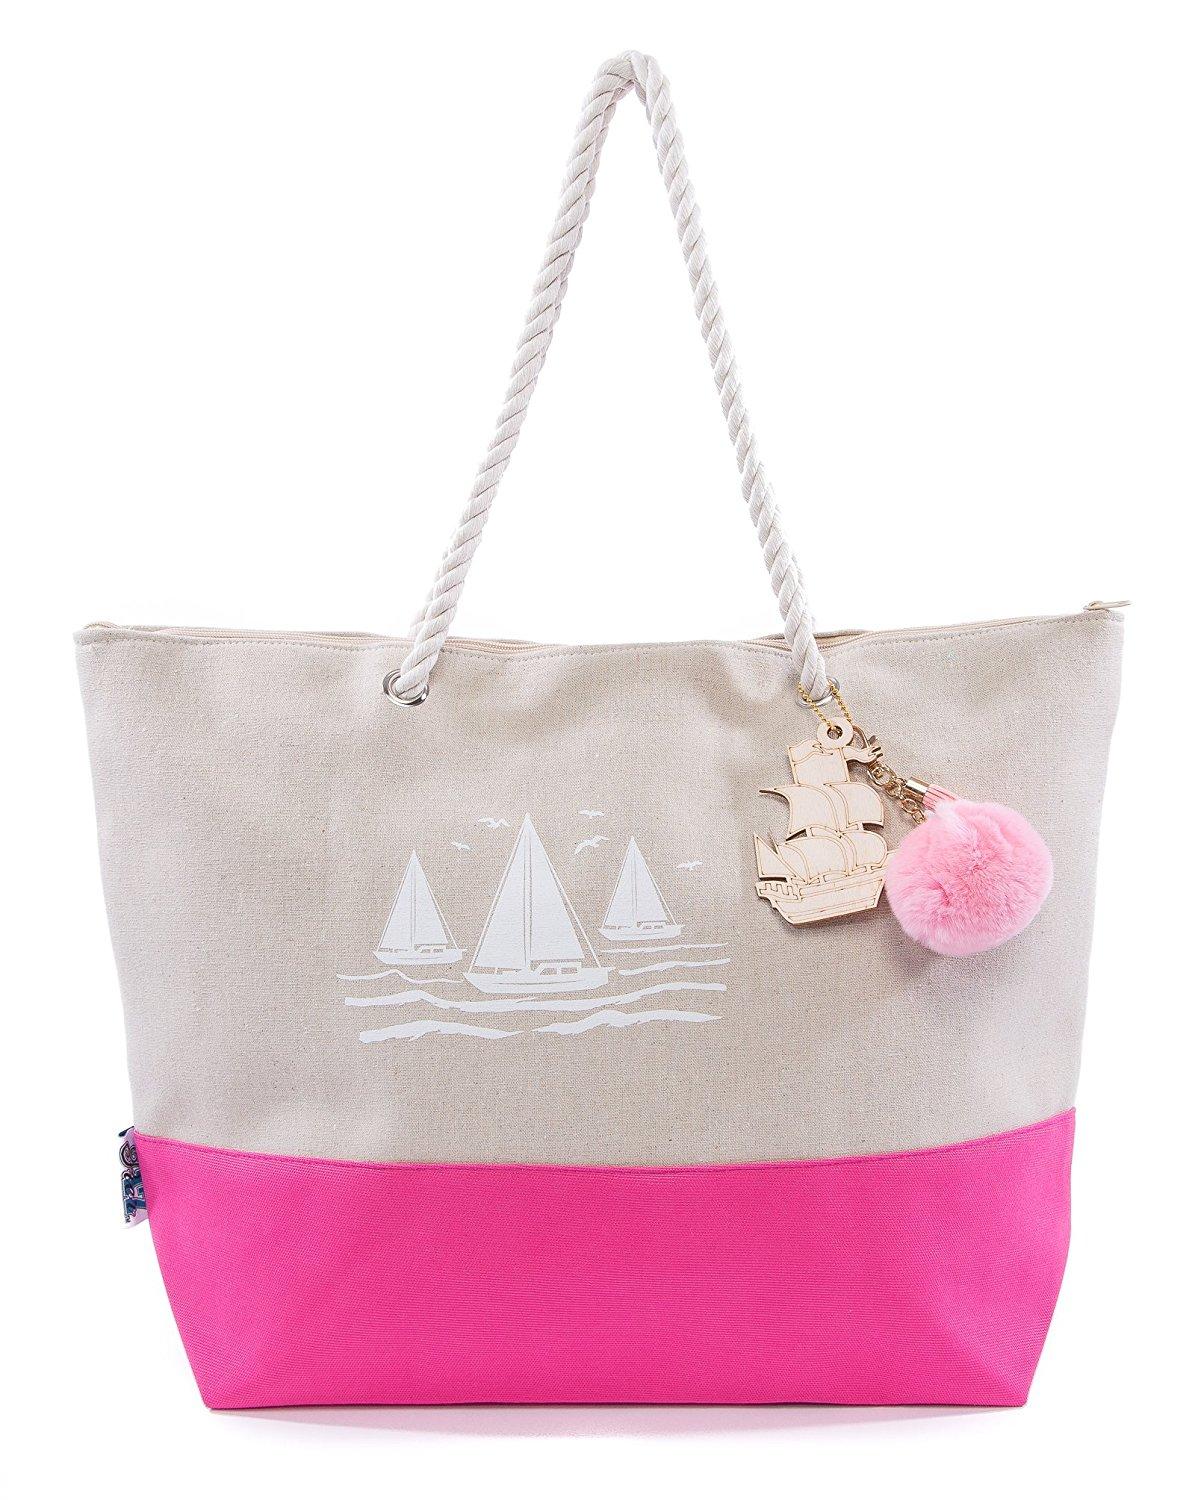 Pier 17 Canvas Beach Bag Is Good For Travel And Beach With Zipper And Pockets